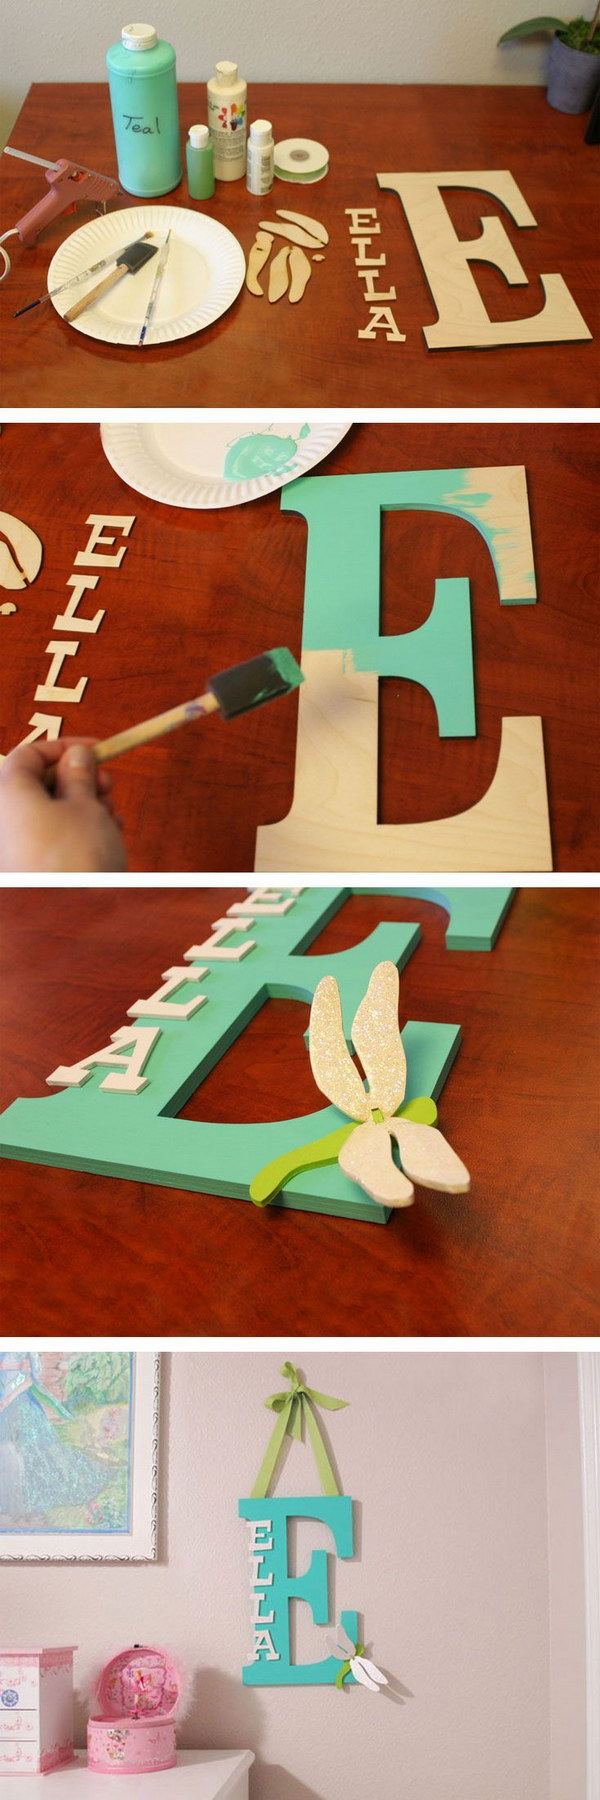 Diy letter ideas tutorials hative for Baby room decoration letters